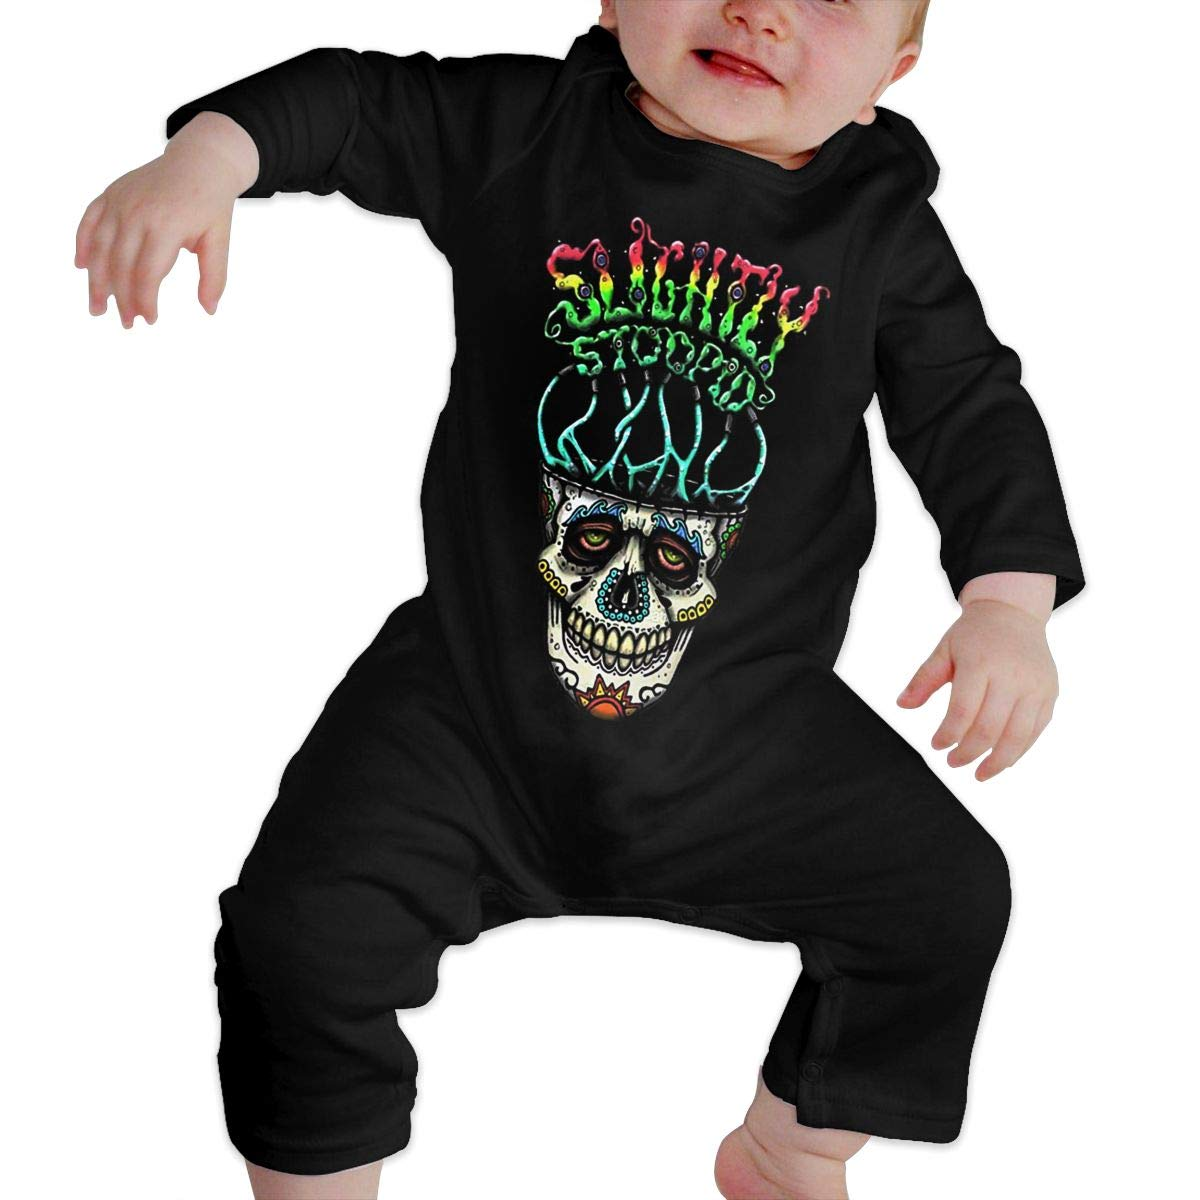 SOFIEYA Slightly Stoopid Kids Baby Unisex Cotton Cute Long Sleeve Hooded Romper Jumpsuit Baby Crawler Clothes Black